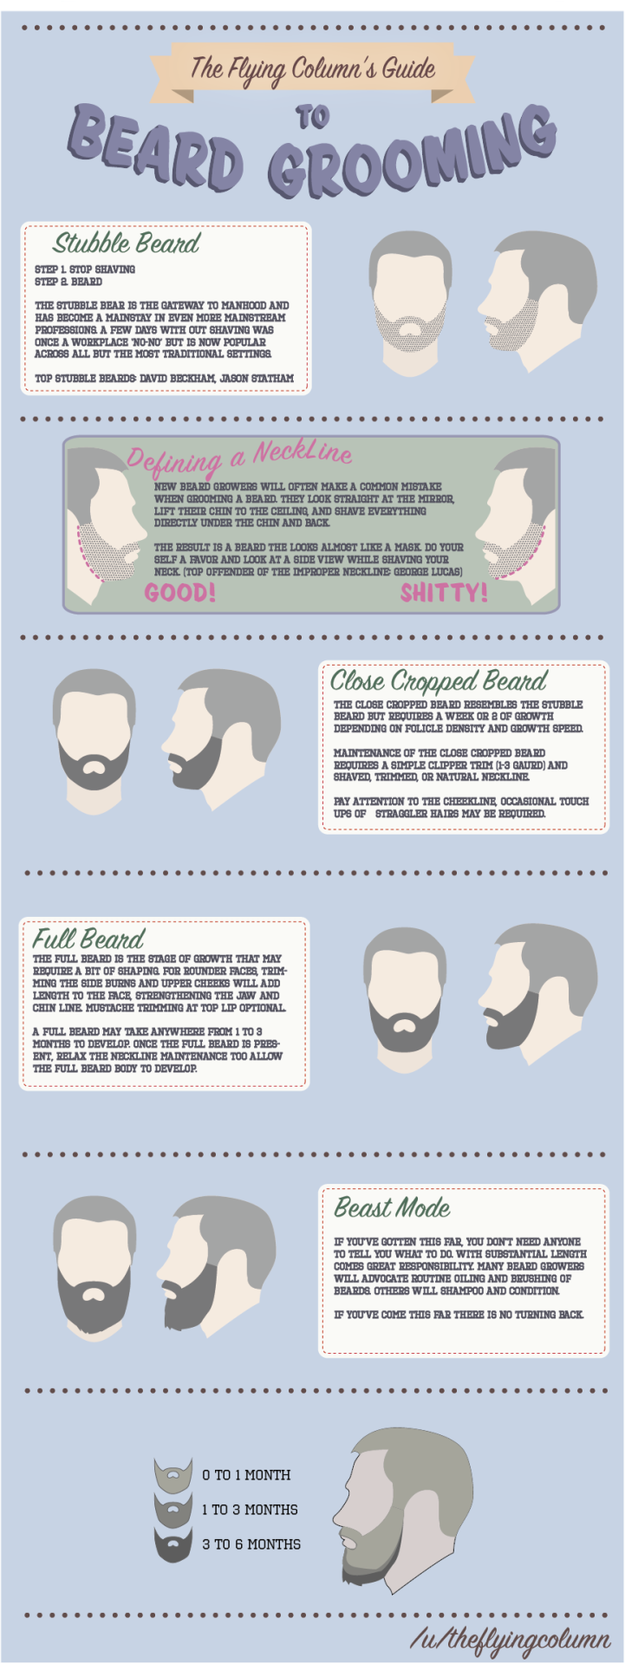 And here's how to get the best beard possible.